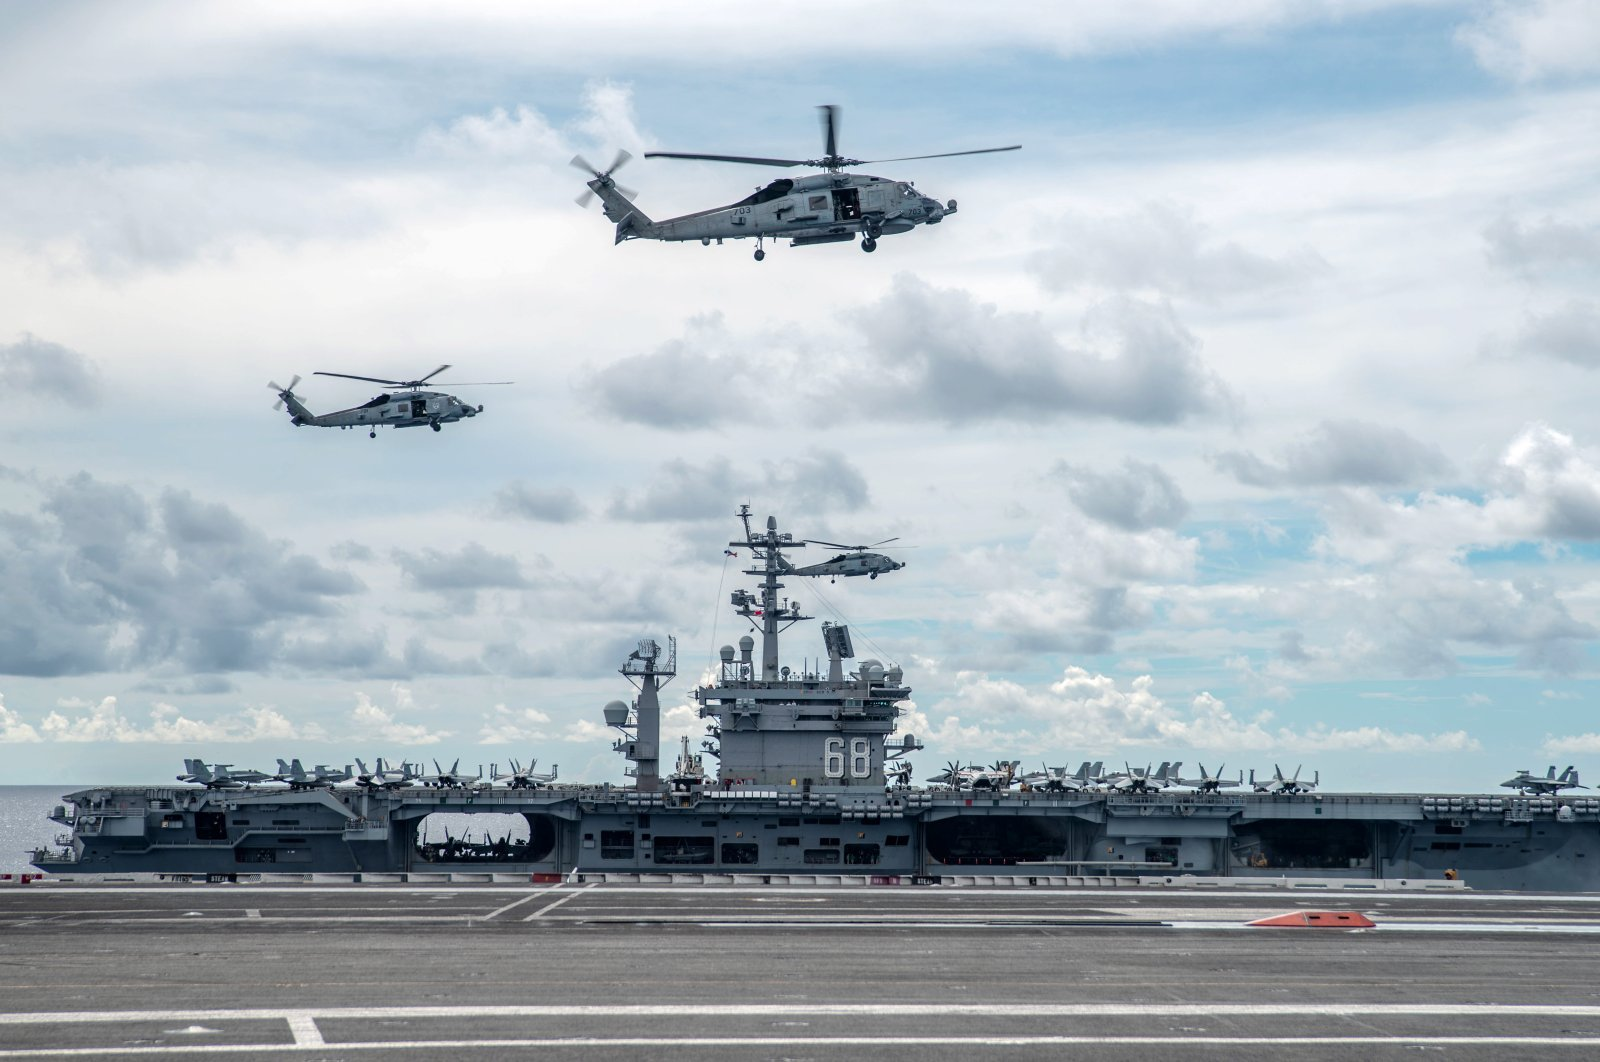 Two MH-60R Seahawks, attached to the Saberhawks of Helicopter Maritime Strike Squadron (HSM) 77, hover over the Navy's only forward-deployed aircraft carriers USS Ronald Reagan (CVN 76) and USS Nimitz (CVN 68), during a drill in the South China Sea, 06 July 2020. (EPA Photo)